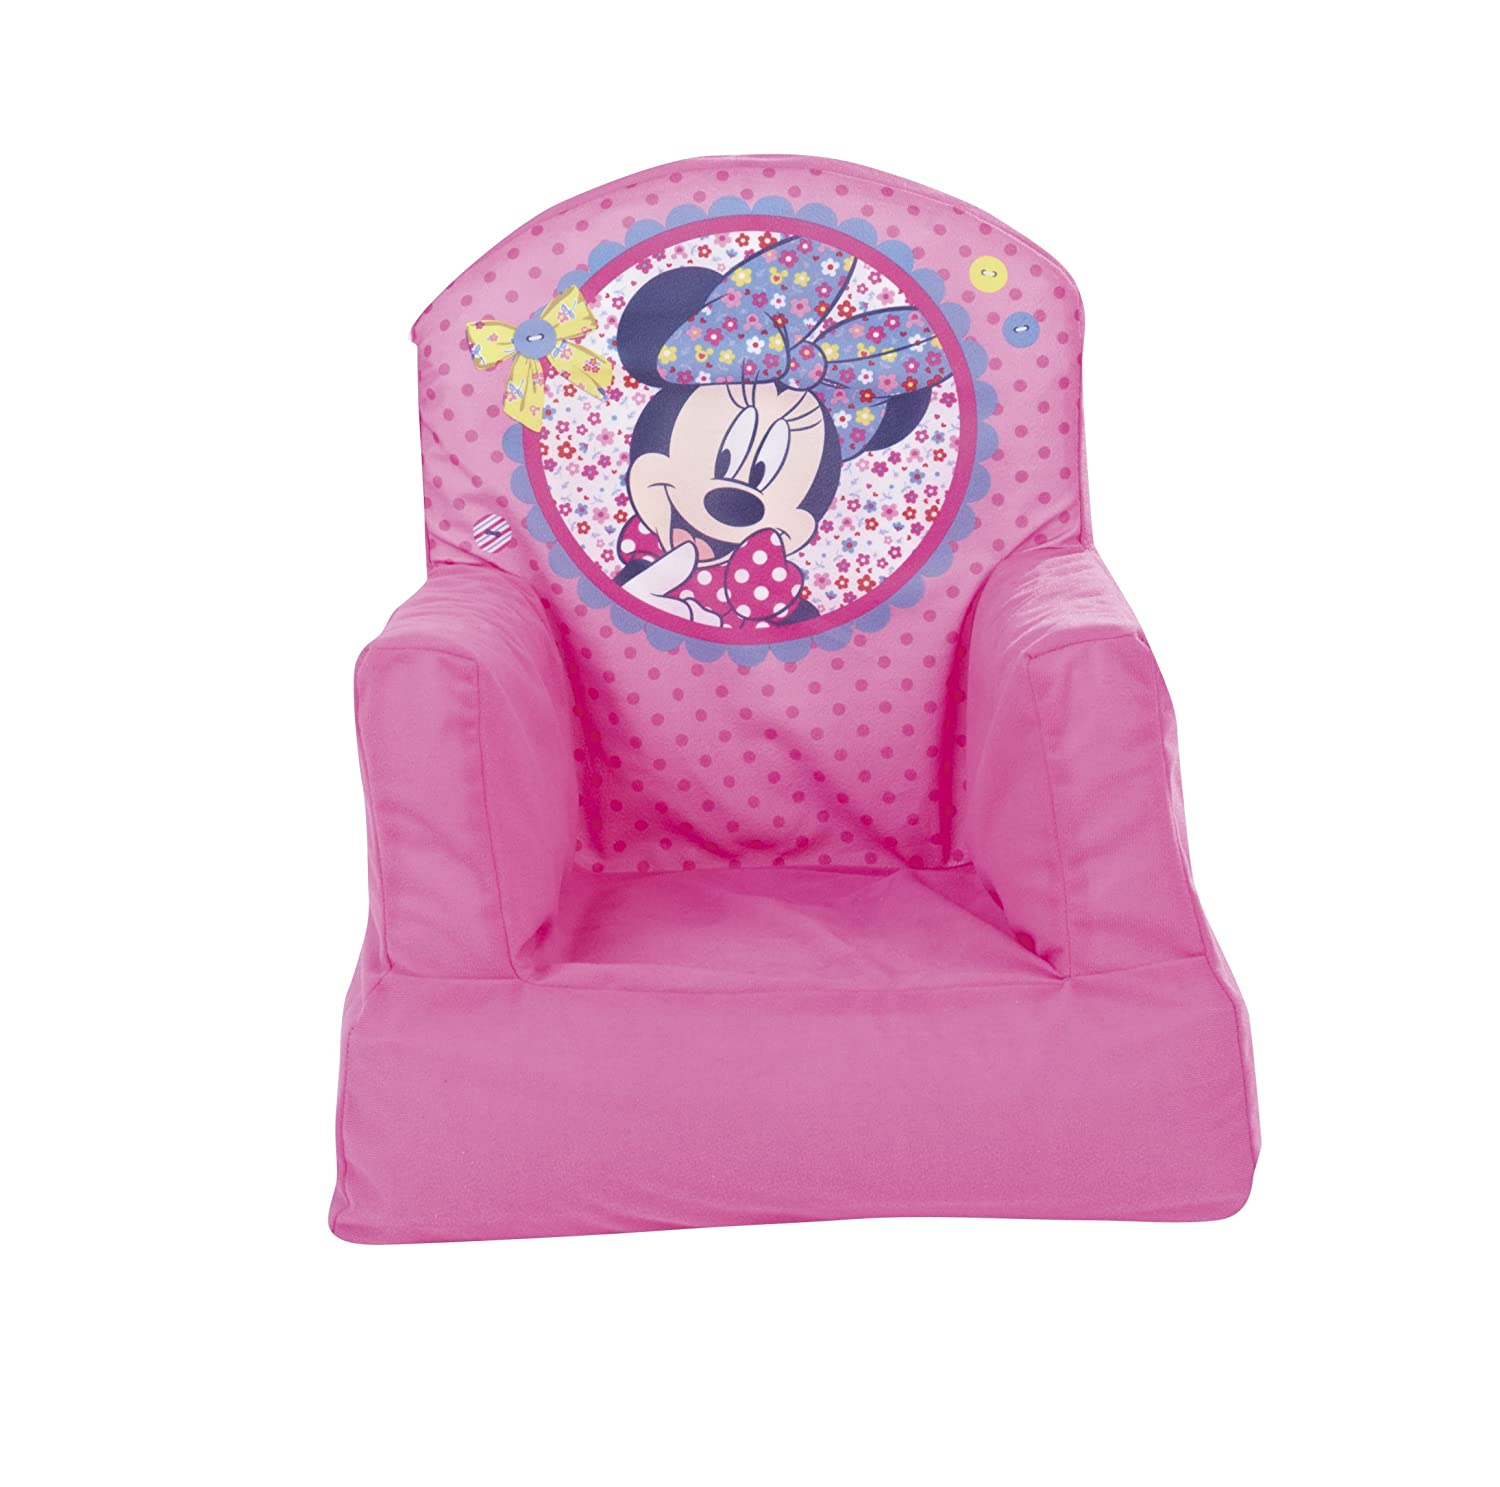 Disney Minnie Mouse Inflatable Chair For Kids Worlds Apart 280MNE01E